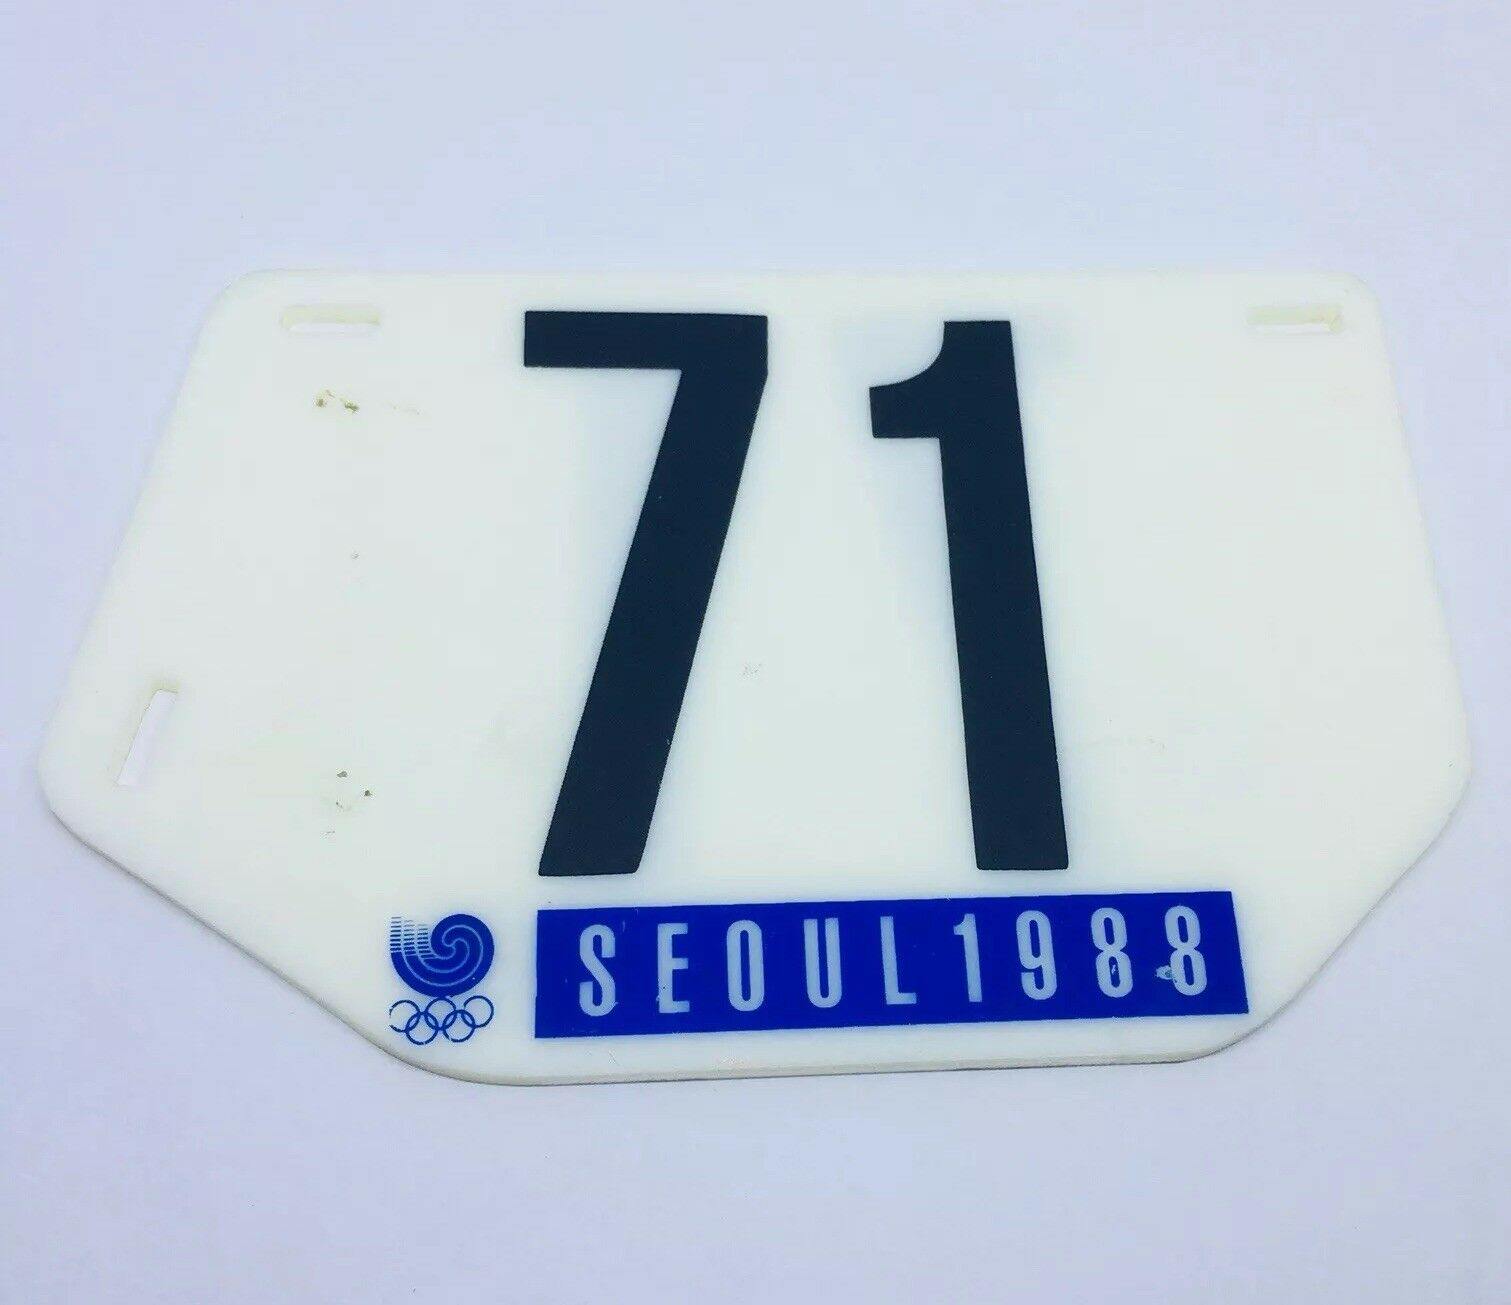 Seoul 1988 Olympic Cycling Frame Number Eroica